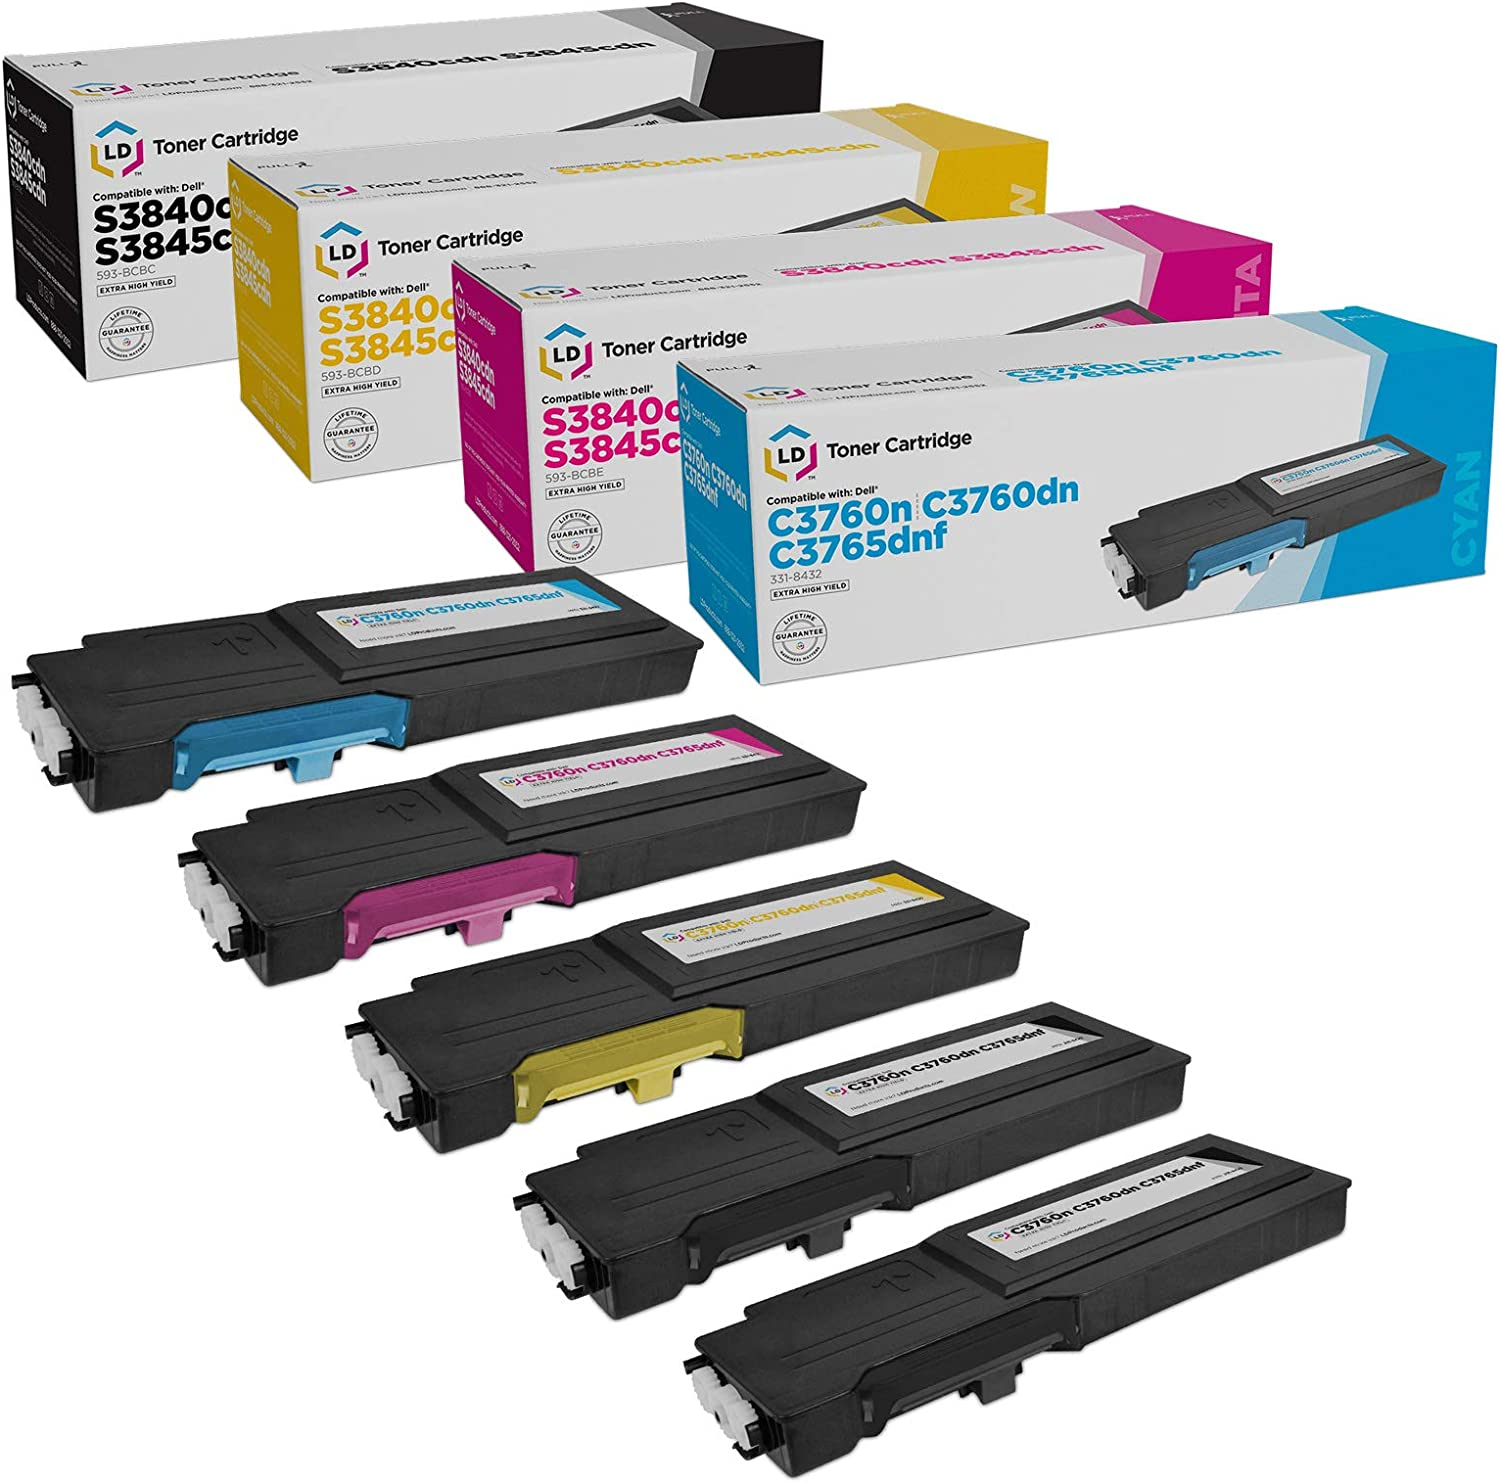 LD Compatible Toner Cartridge Replacement for Dell C3760 & C3765 Extra High Yield (2 Black, 1 Cyan, 1 Magenta, 1 Yellow, 5-Pack)